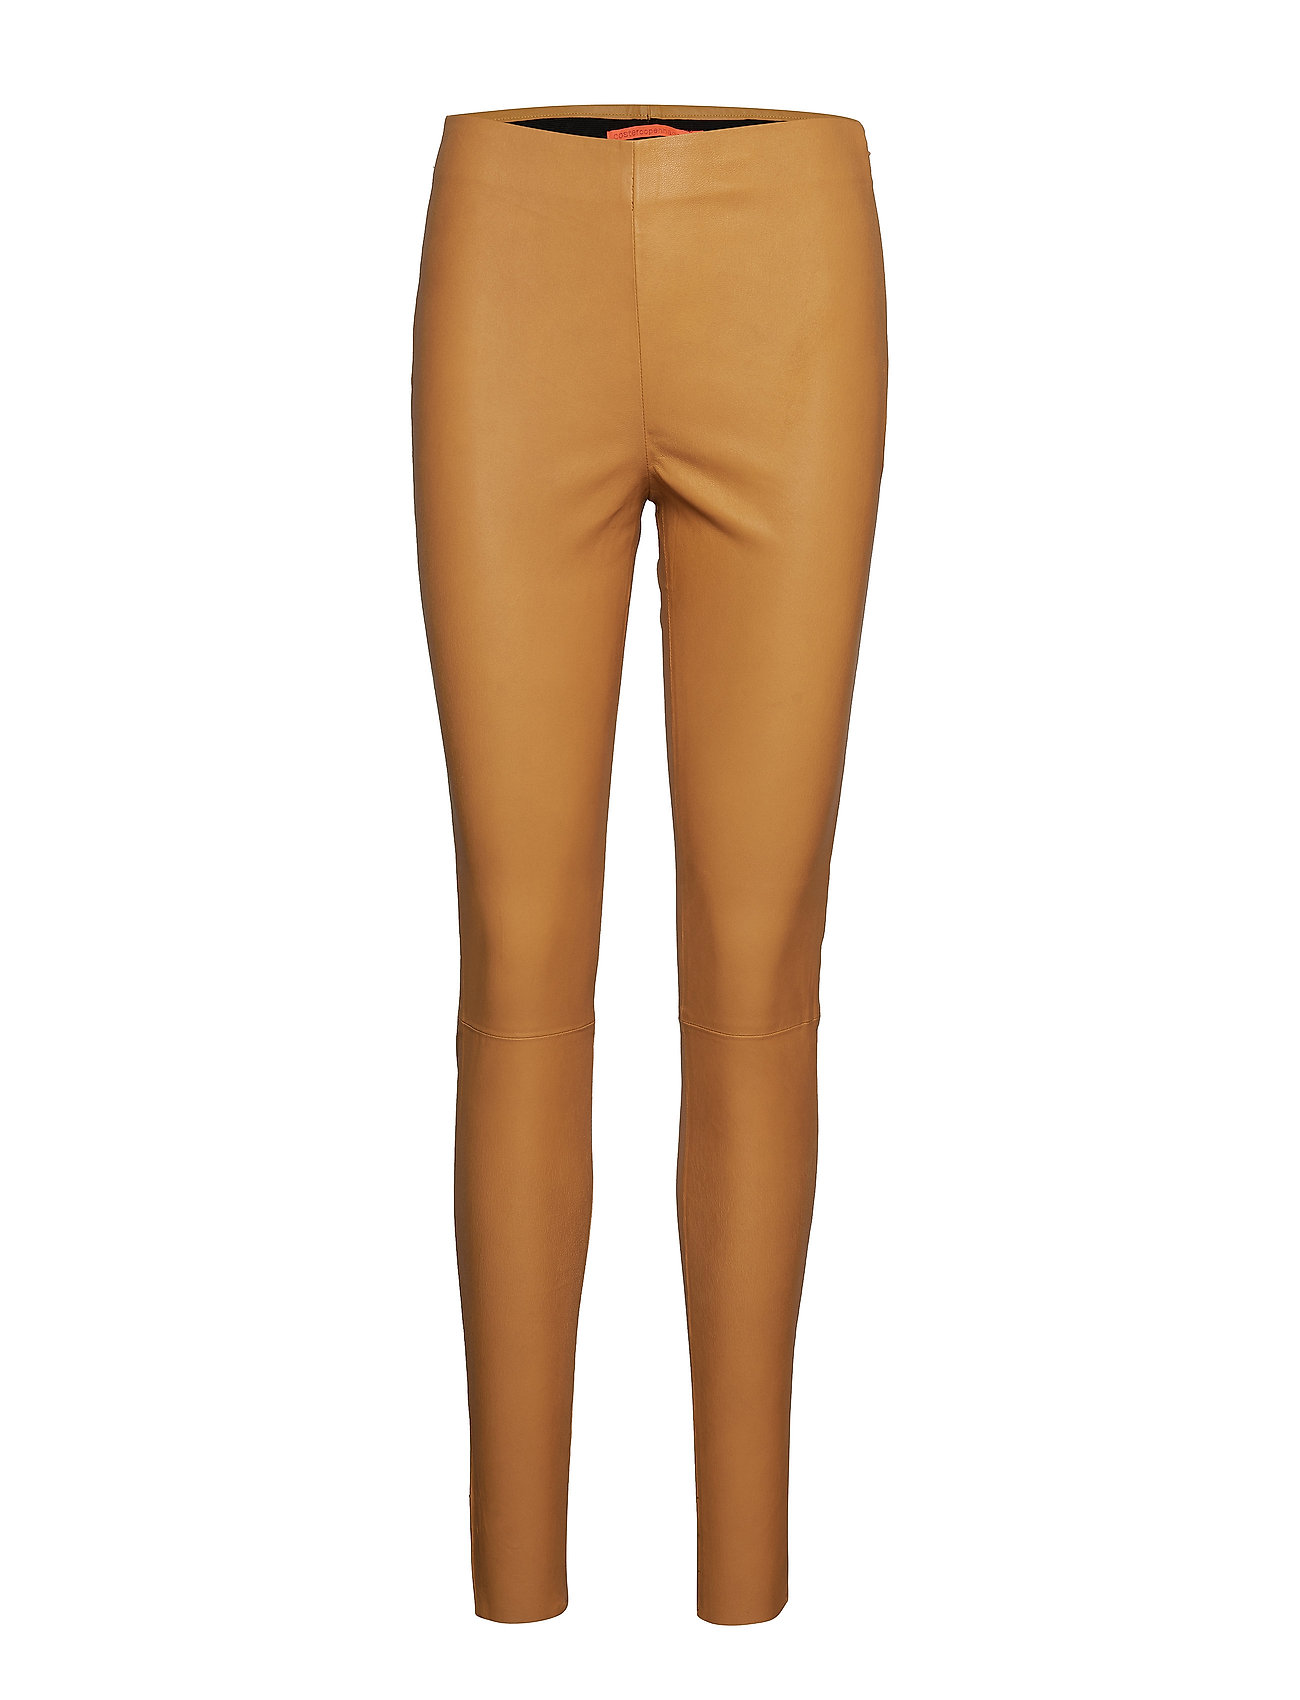 Image of Leather Stretch Leggings - Mynte Leather Leggings/Bukser Gul COSTER COPENHAGEN (3169765849)